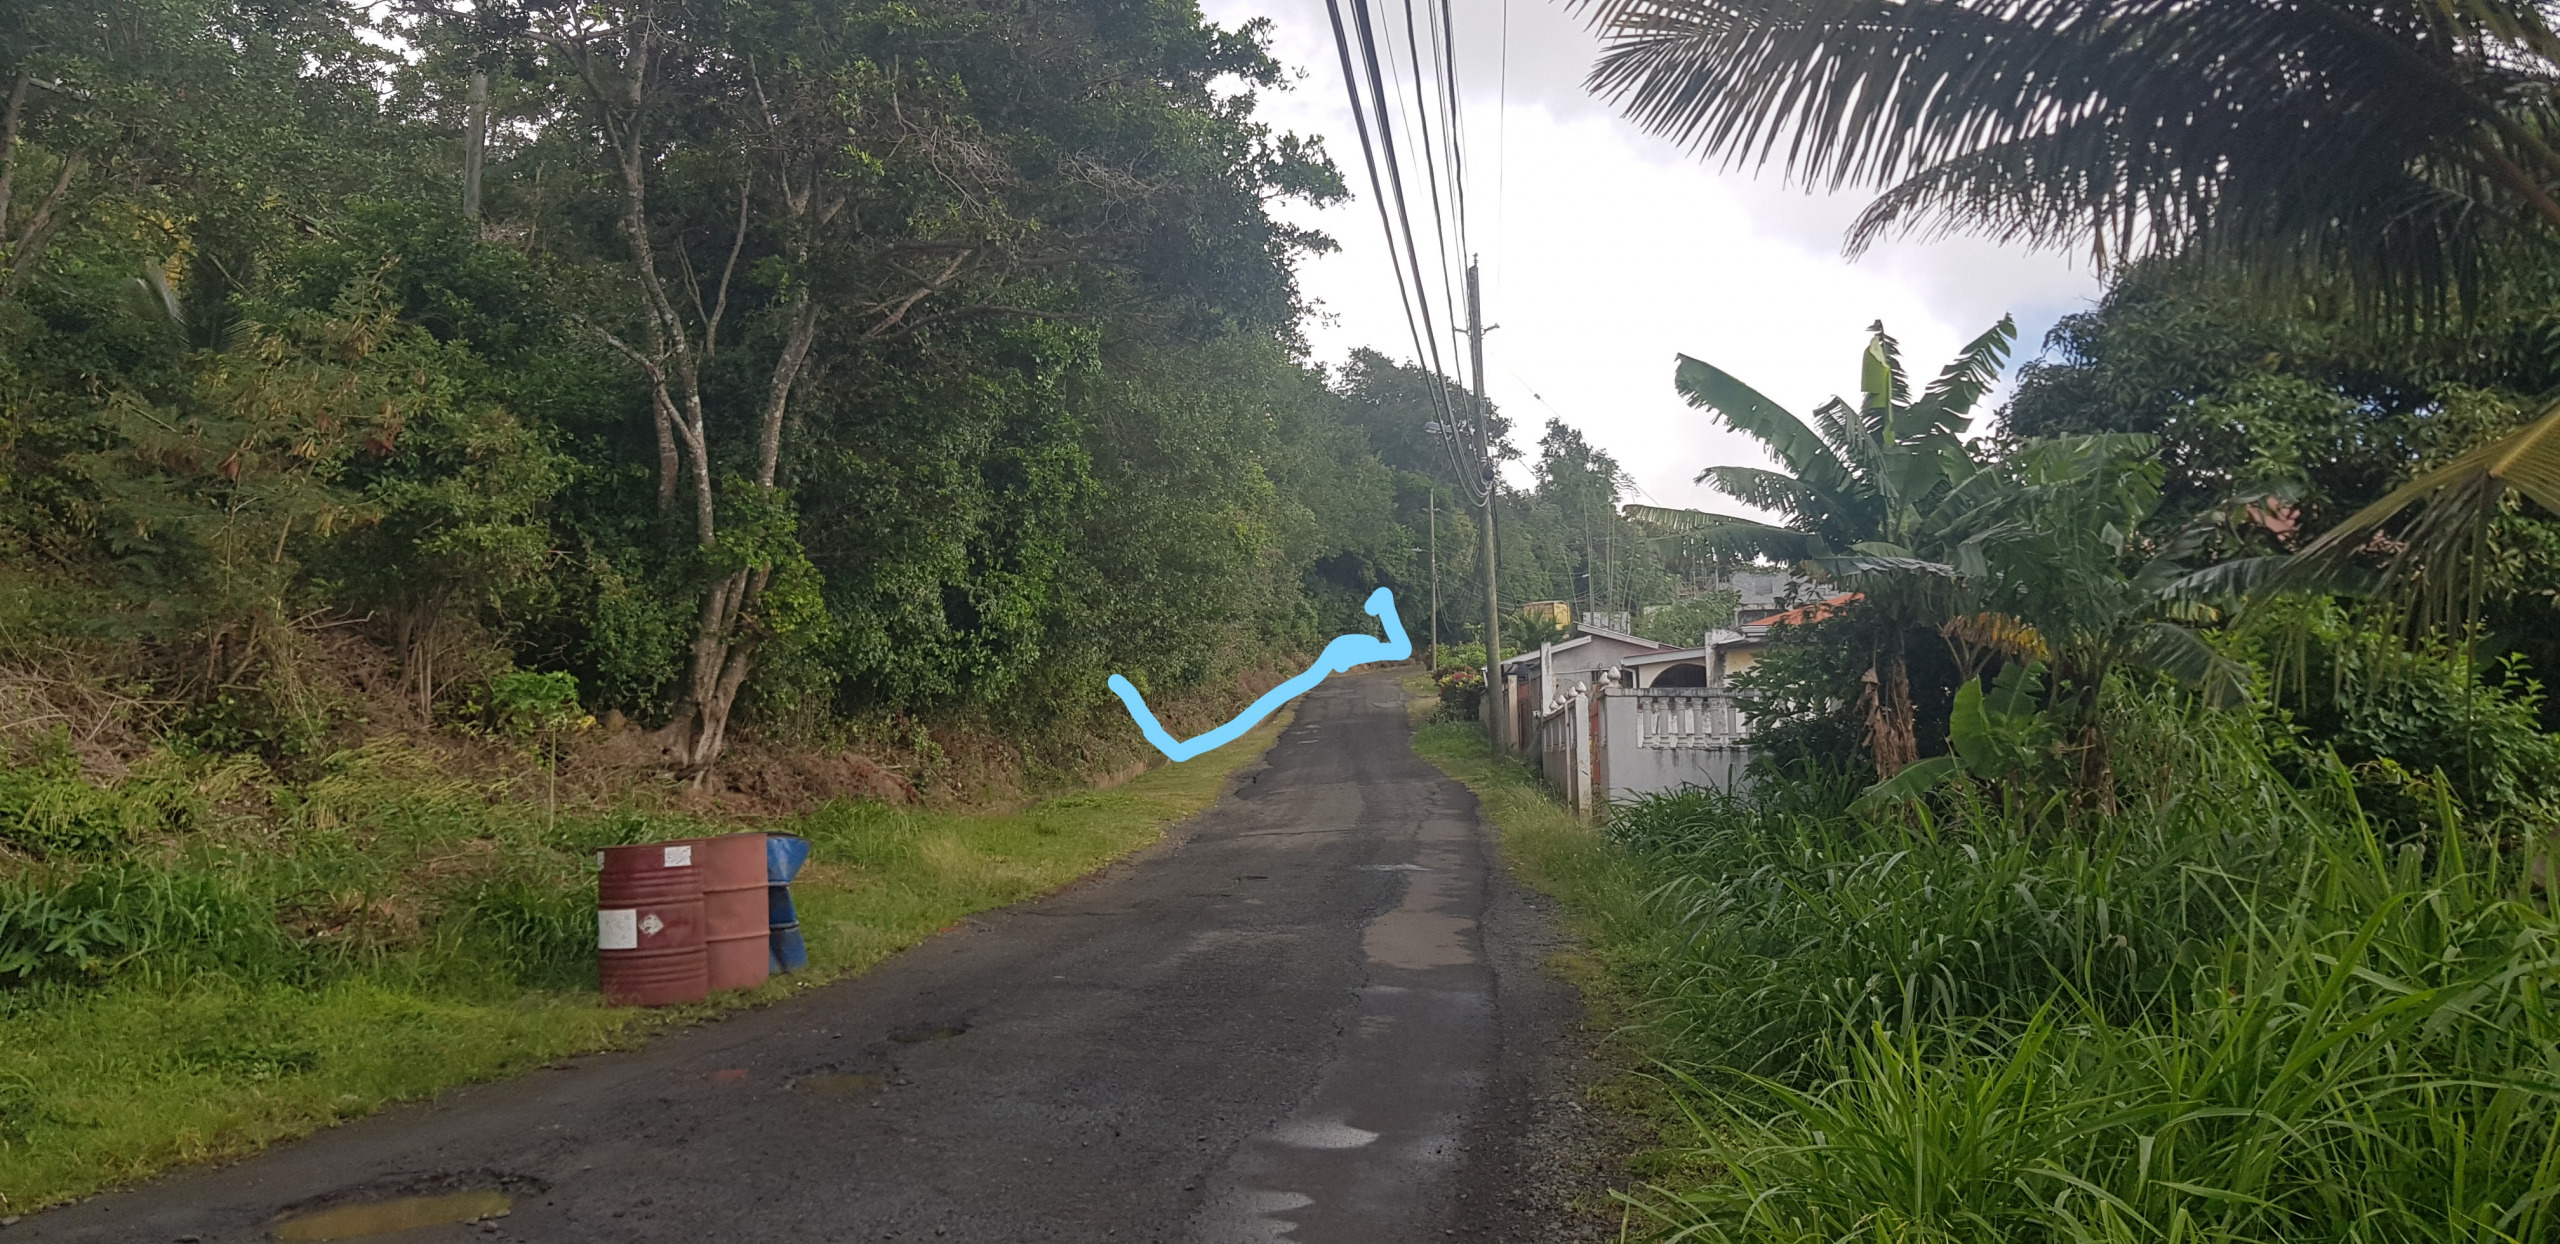 17. 158 Sq Ft Land For Sale at Cacao , Pierrot Vieux-Fort